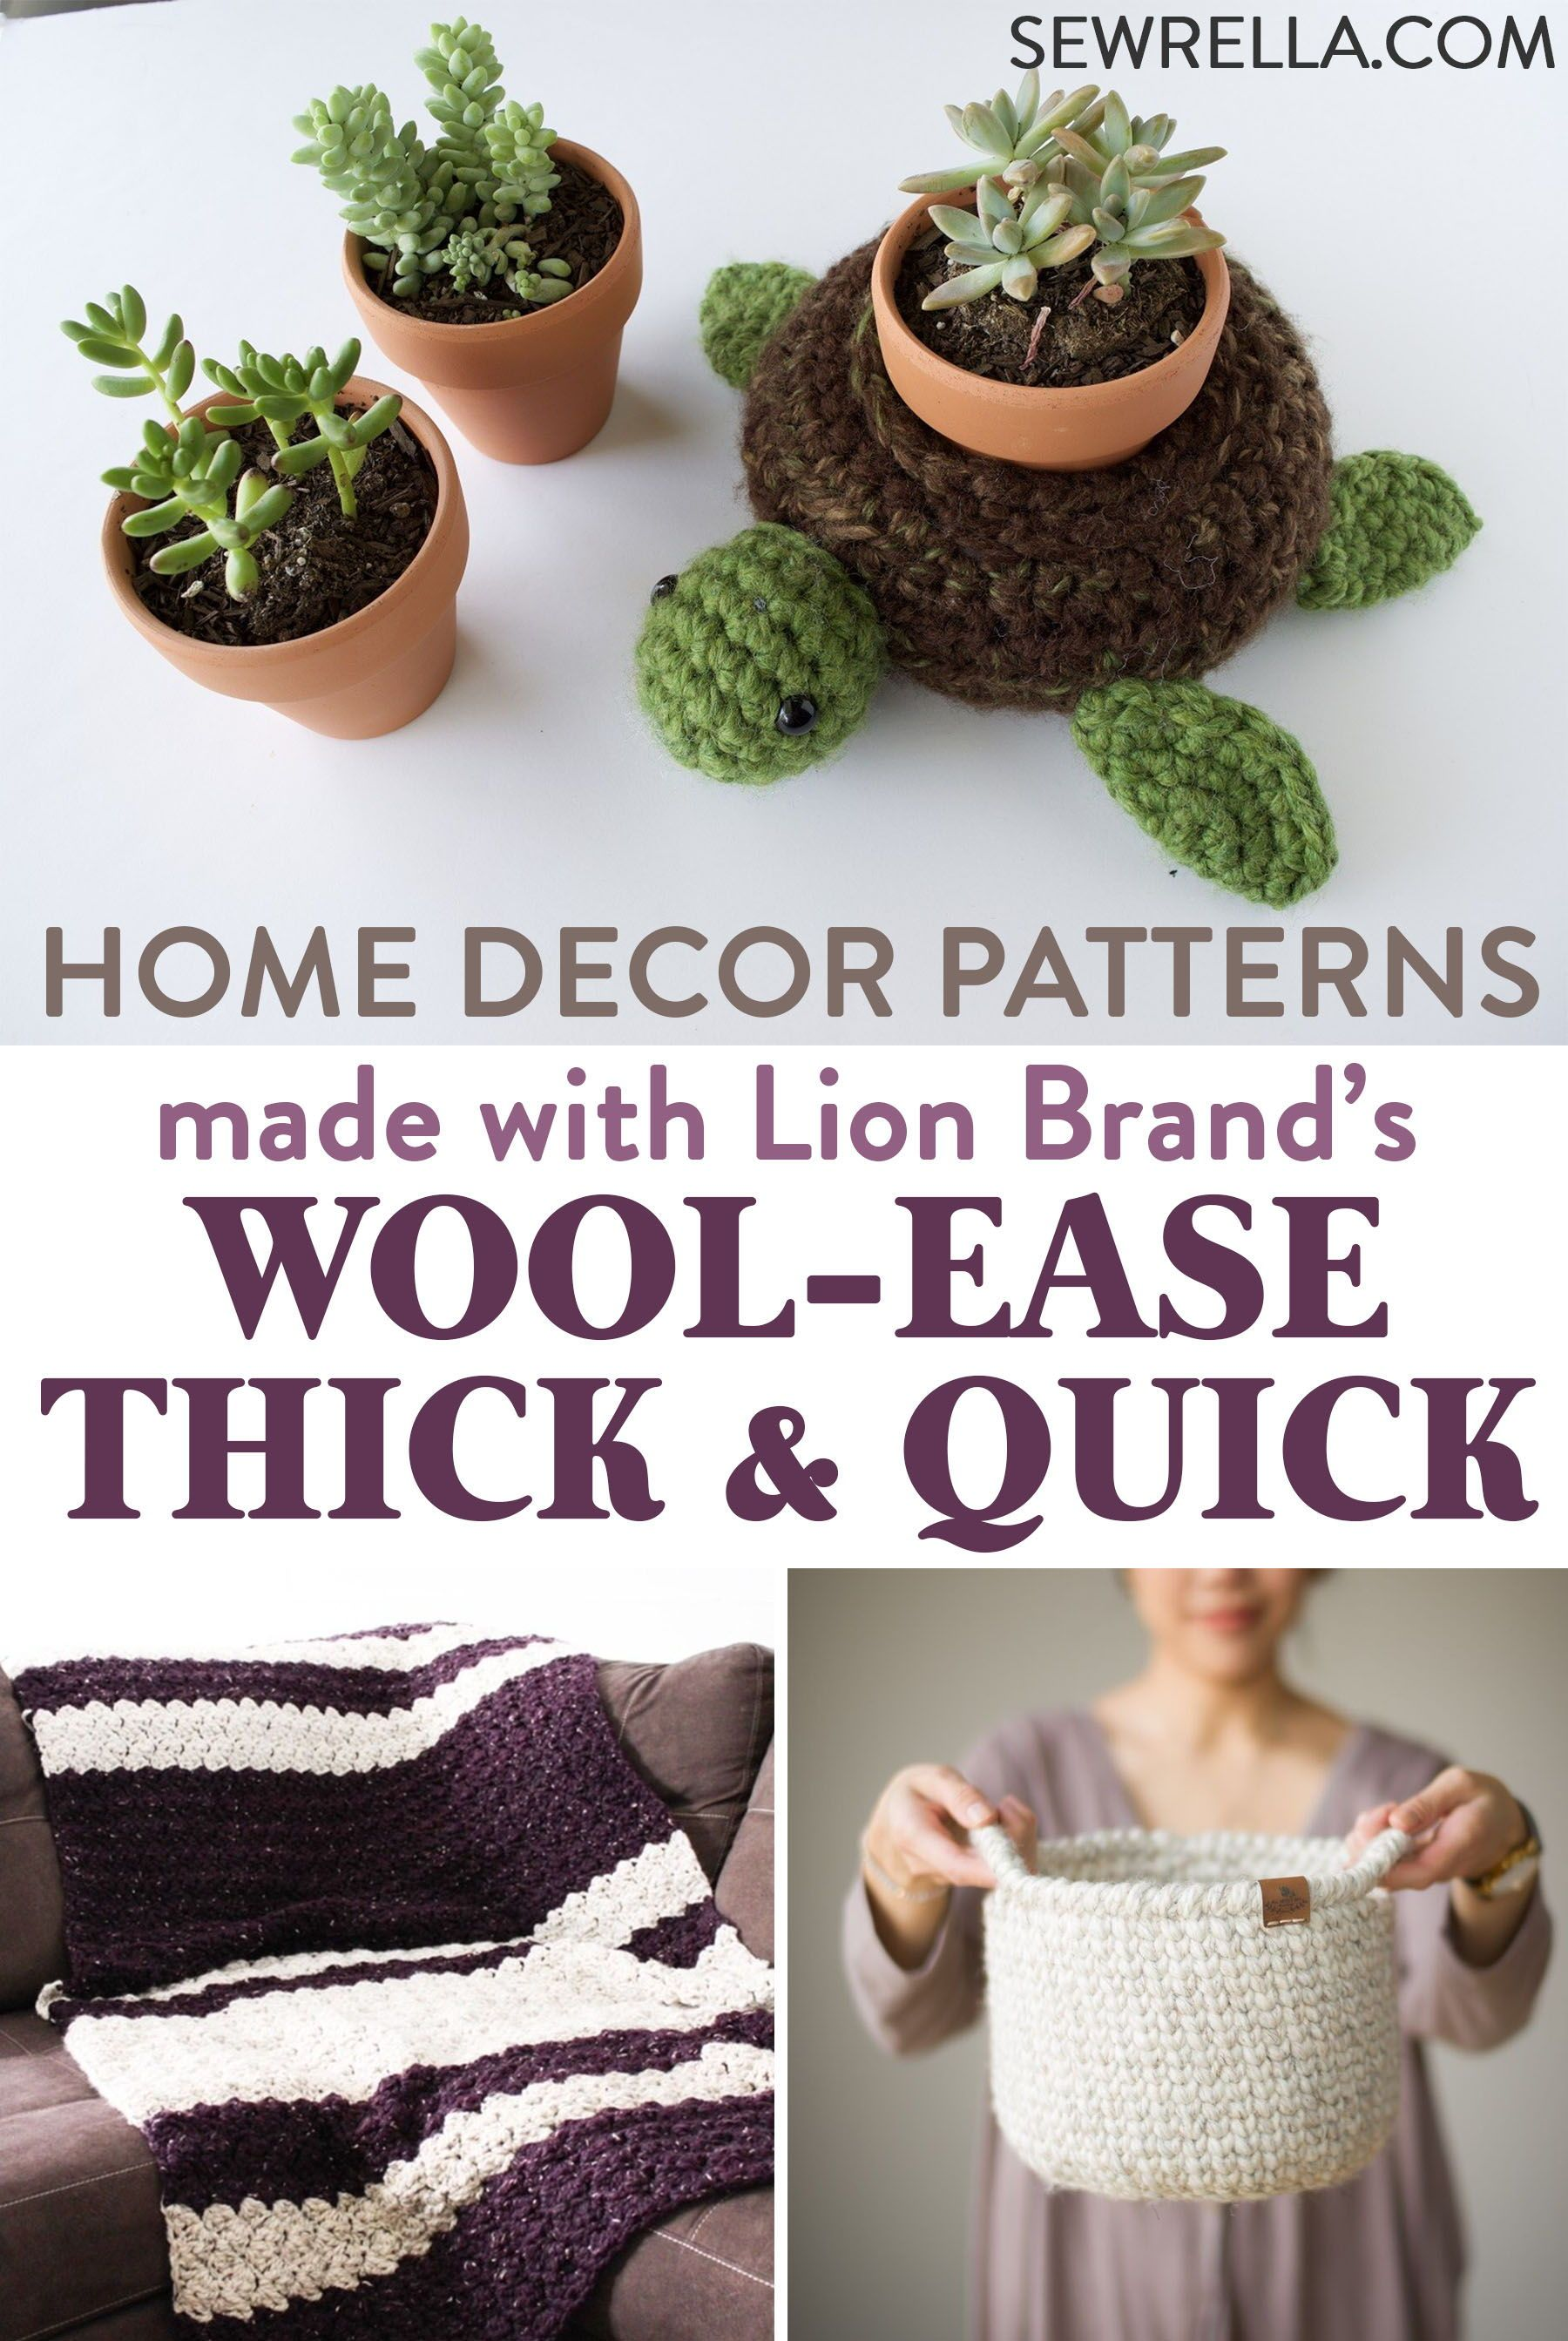 A Variety of Wool-Ease Thick & Quick Crochet and Knit Patterns ...